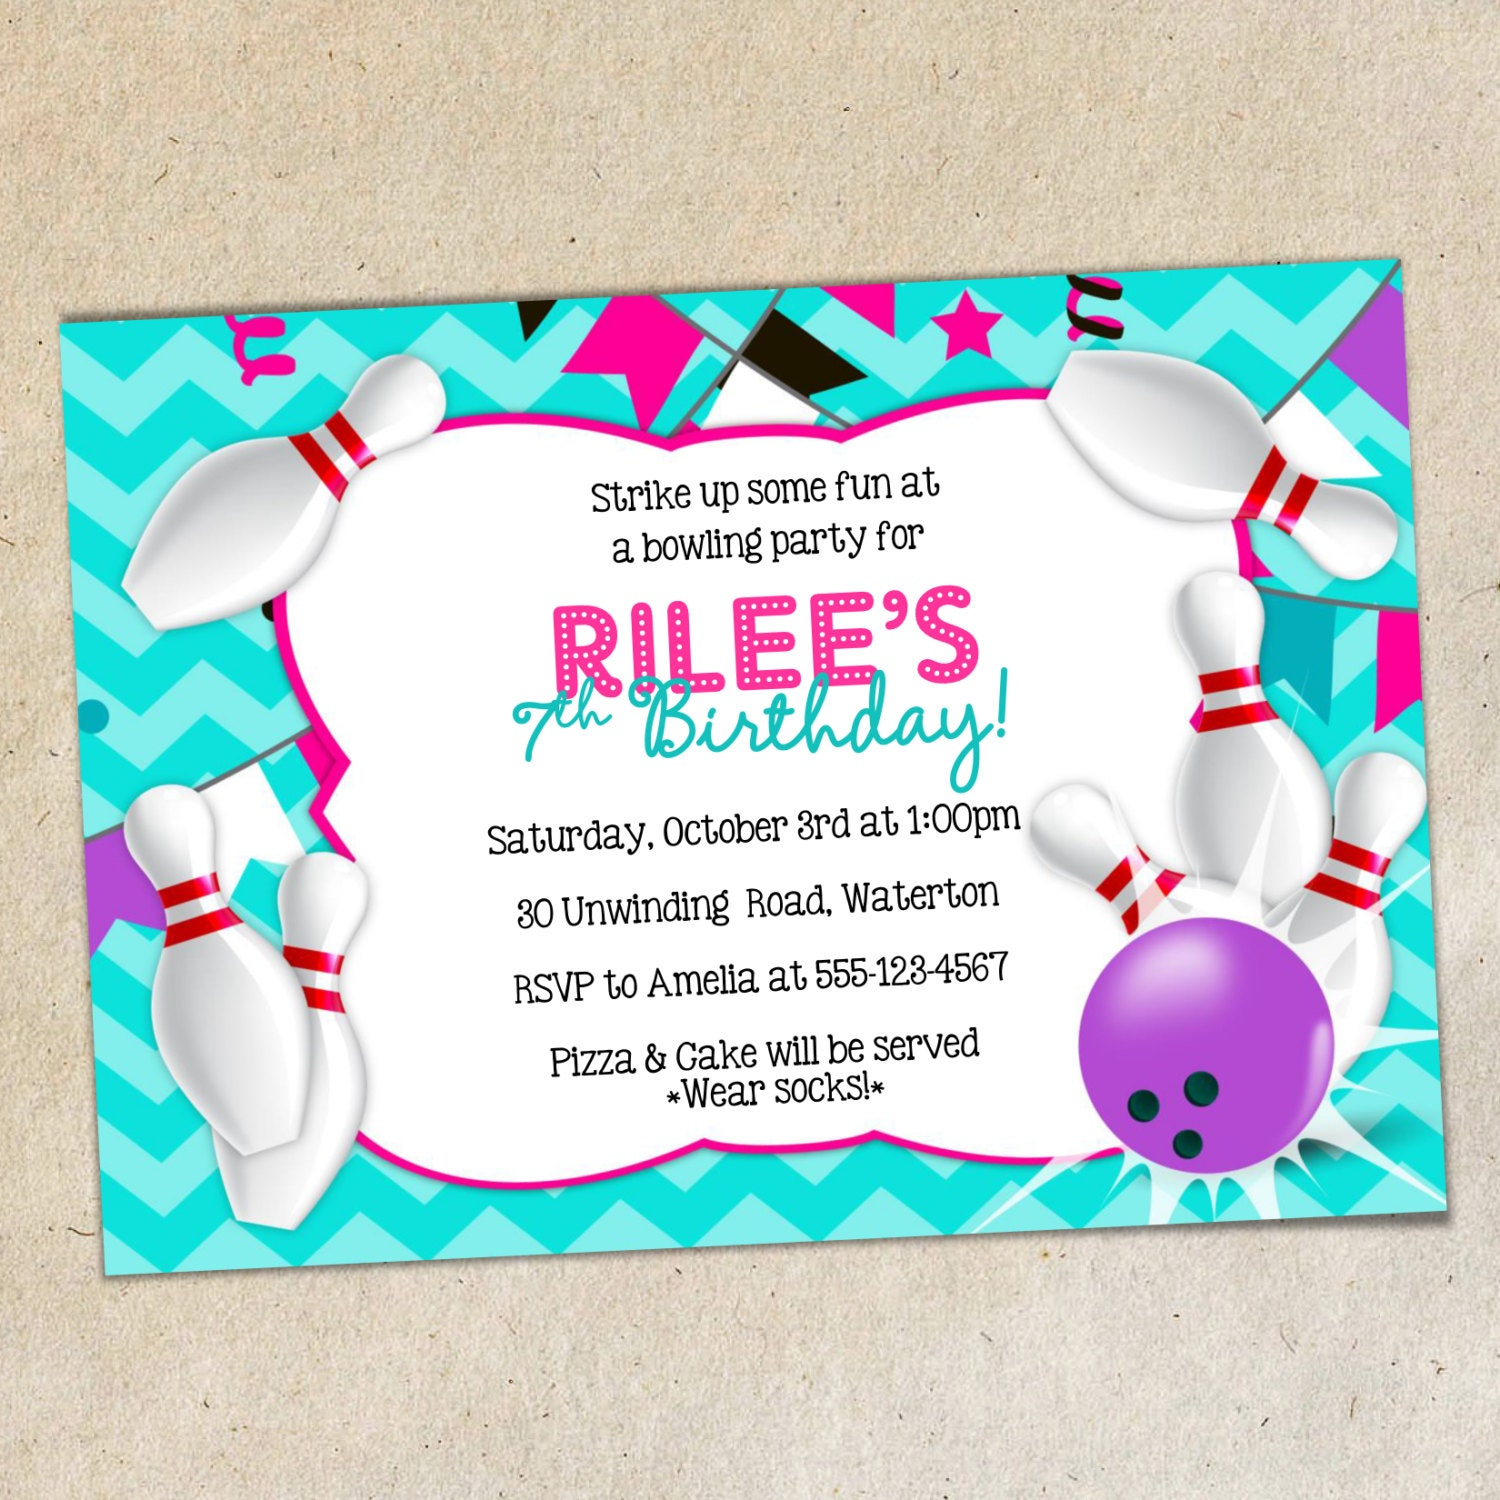 GIRLS Bowling Party Invitation TEMPLATE Girly Chevron | Etsy